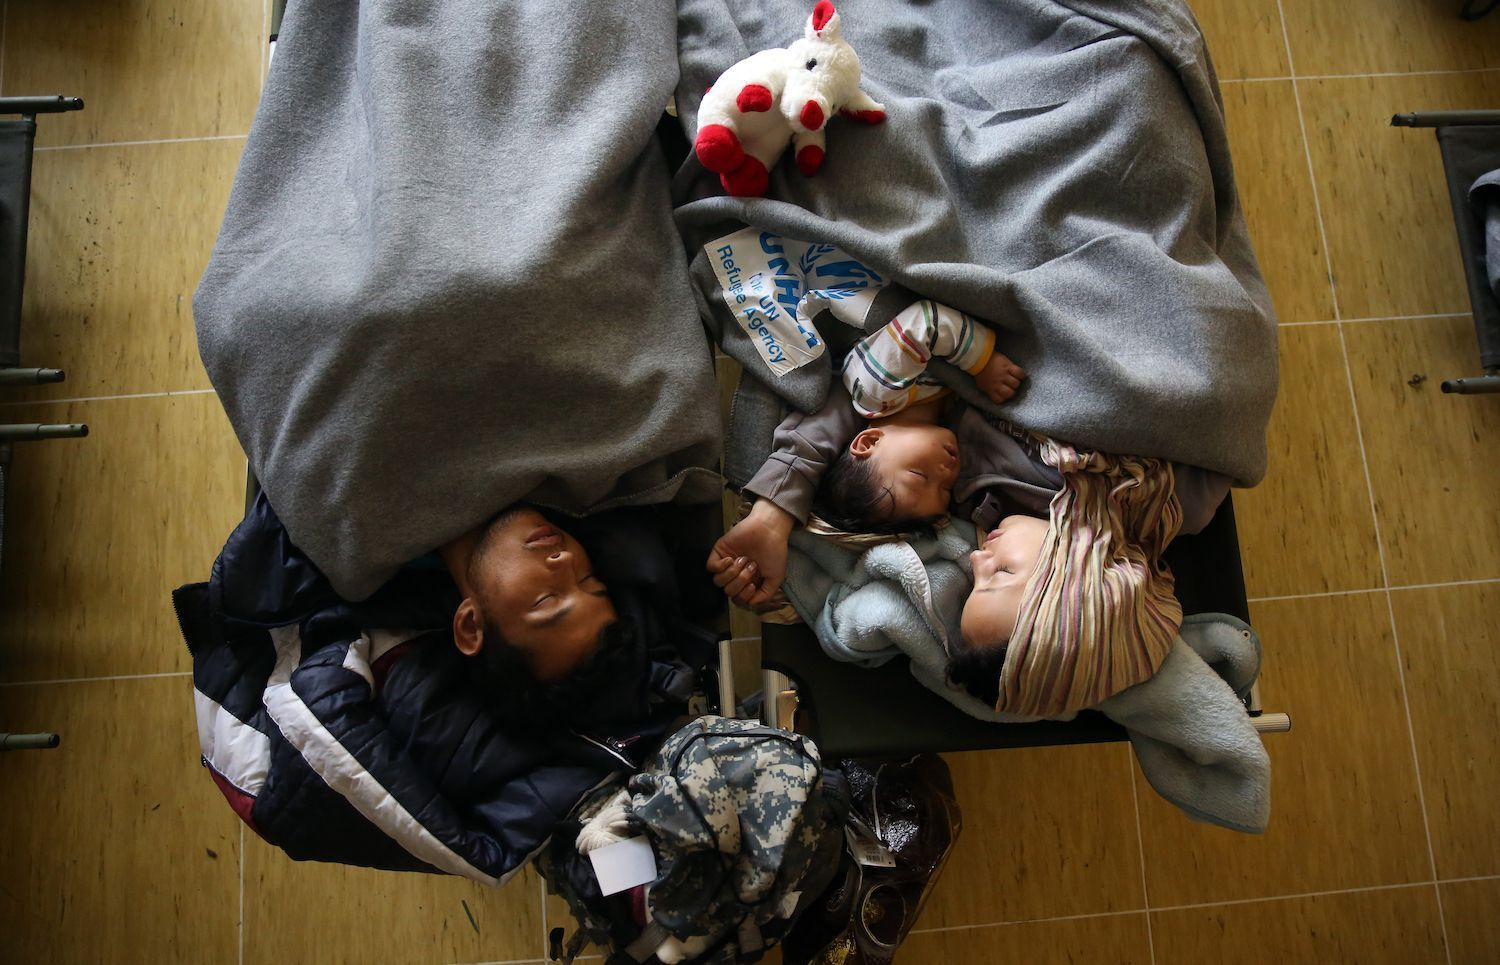 A family sleeping in blankets from the United Nations High Commissioner for Refugees (UNHCR), at the Refugee Aid Center in Šid, Serbia